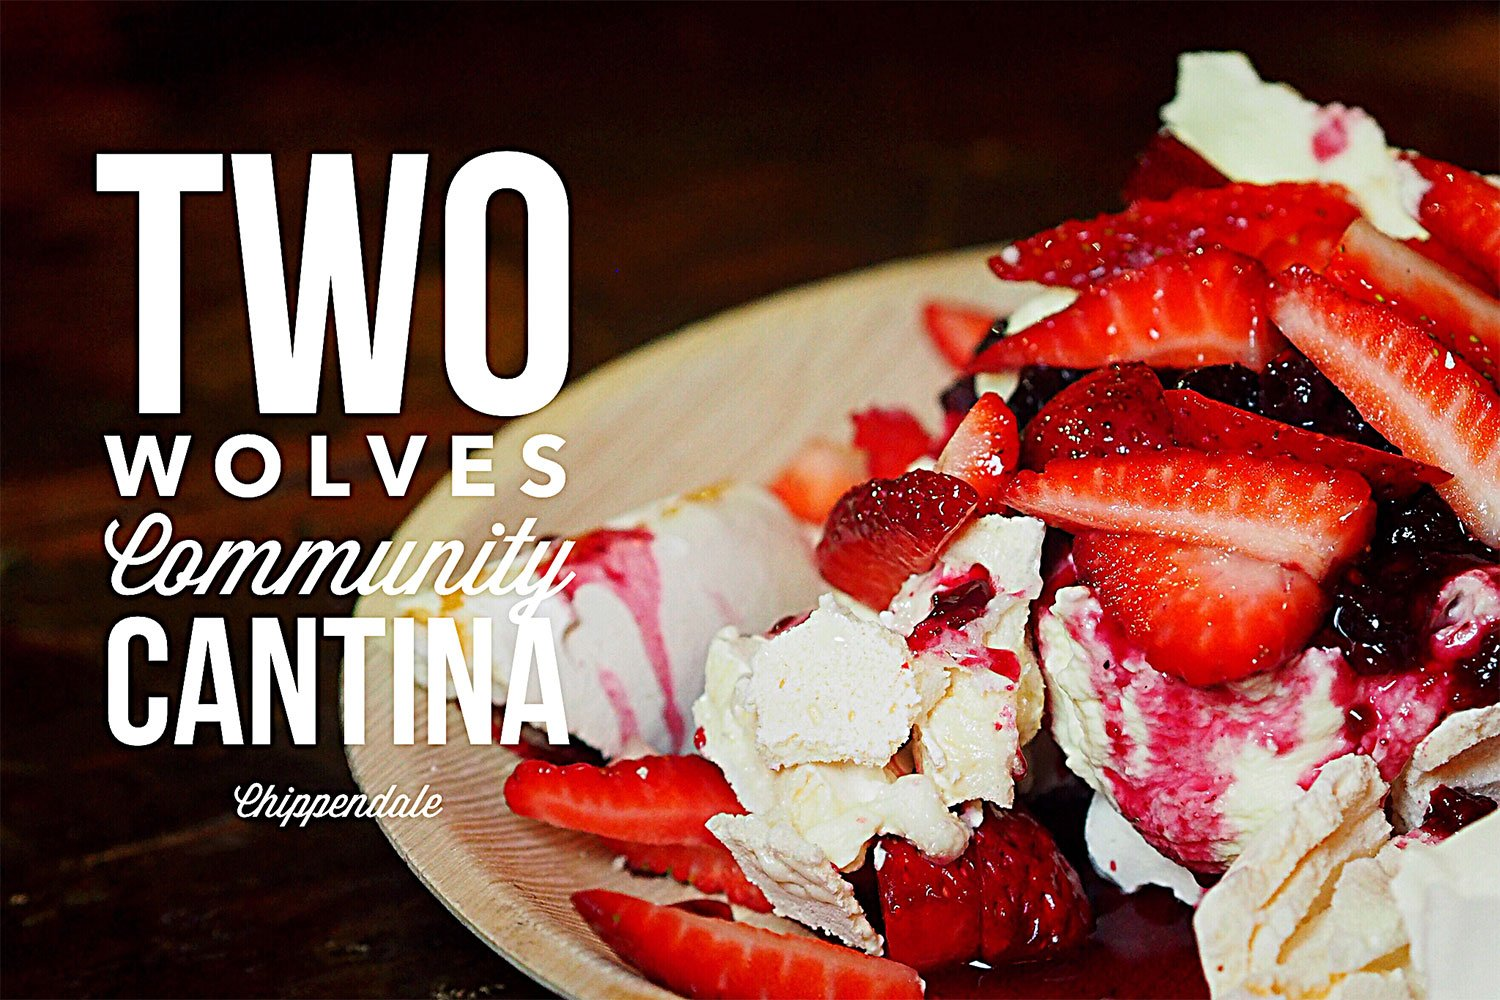 Two Wolves Community Cantina, Chippendale,. Sydney Food Blog Review